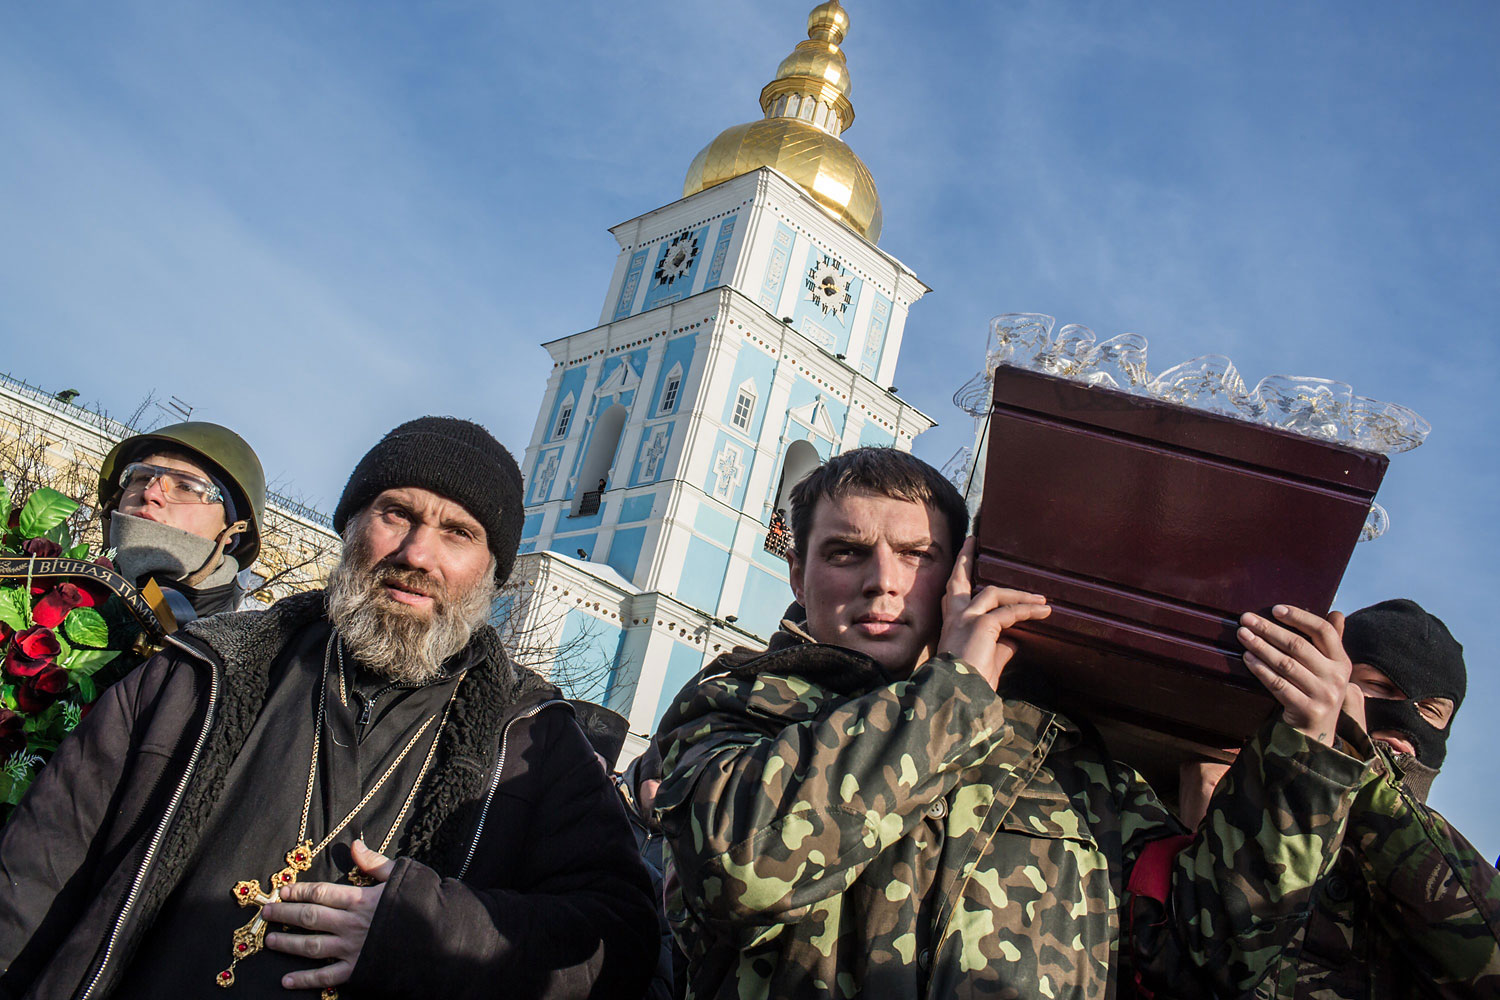 Men carry a casket containing the body of Mikhail Zhiznevsky, 25, an anti-government protester who was killed in clashes with police, outside Mikhailovsky Cathedral after a memorial service there in his honor on Jan. 26, 2014 in Kiev.